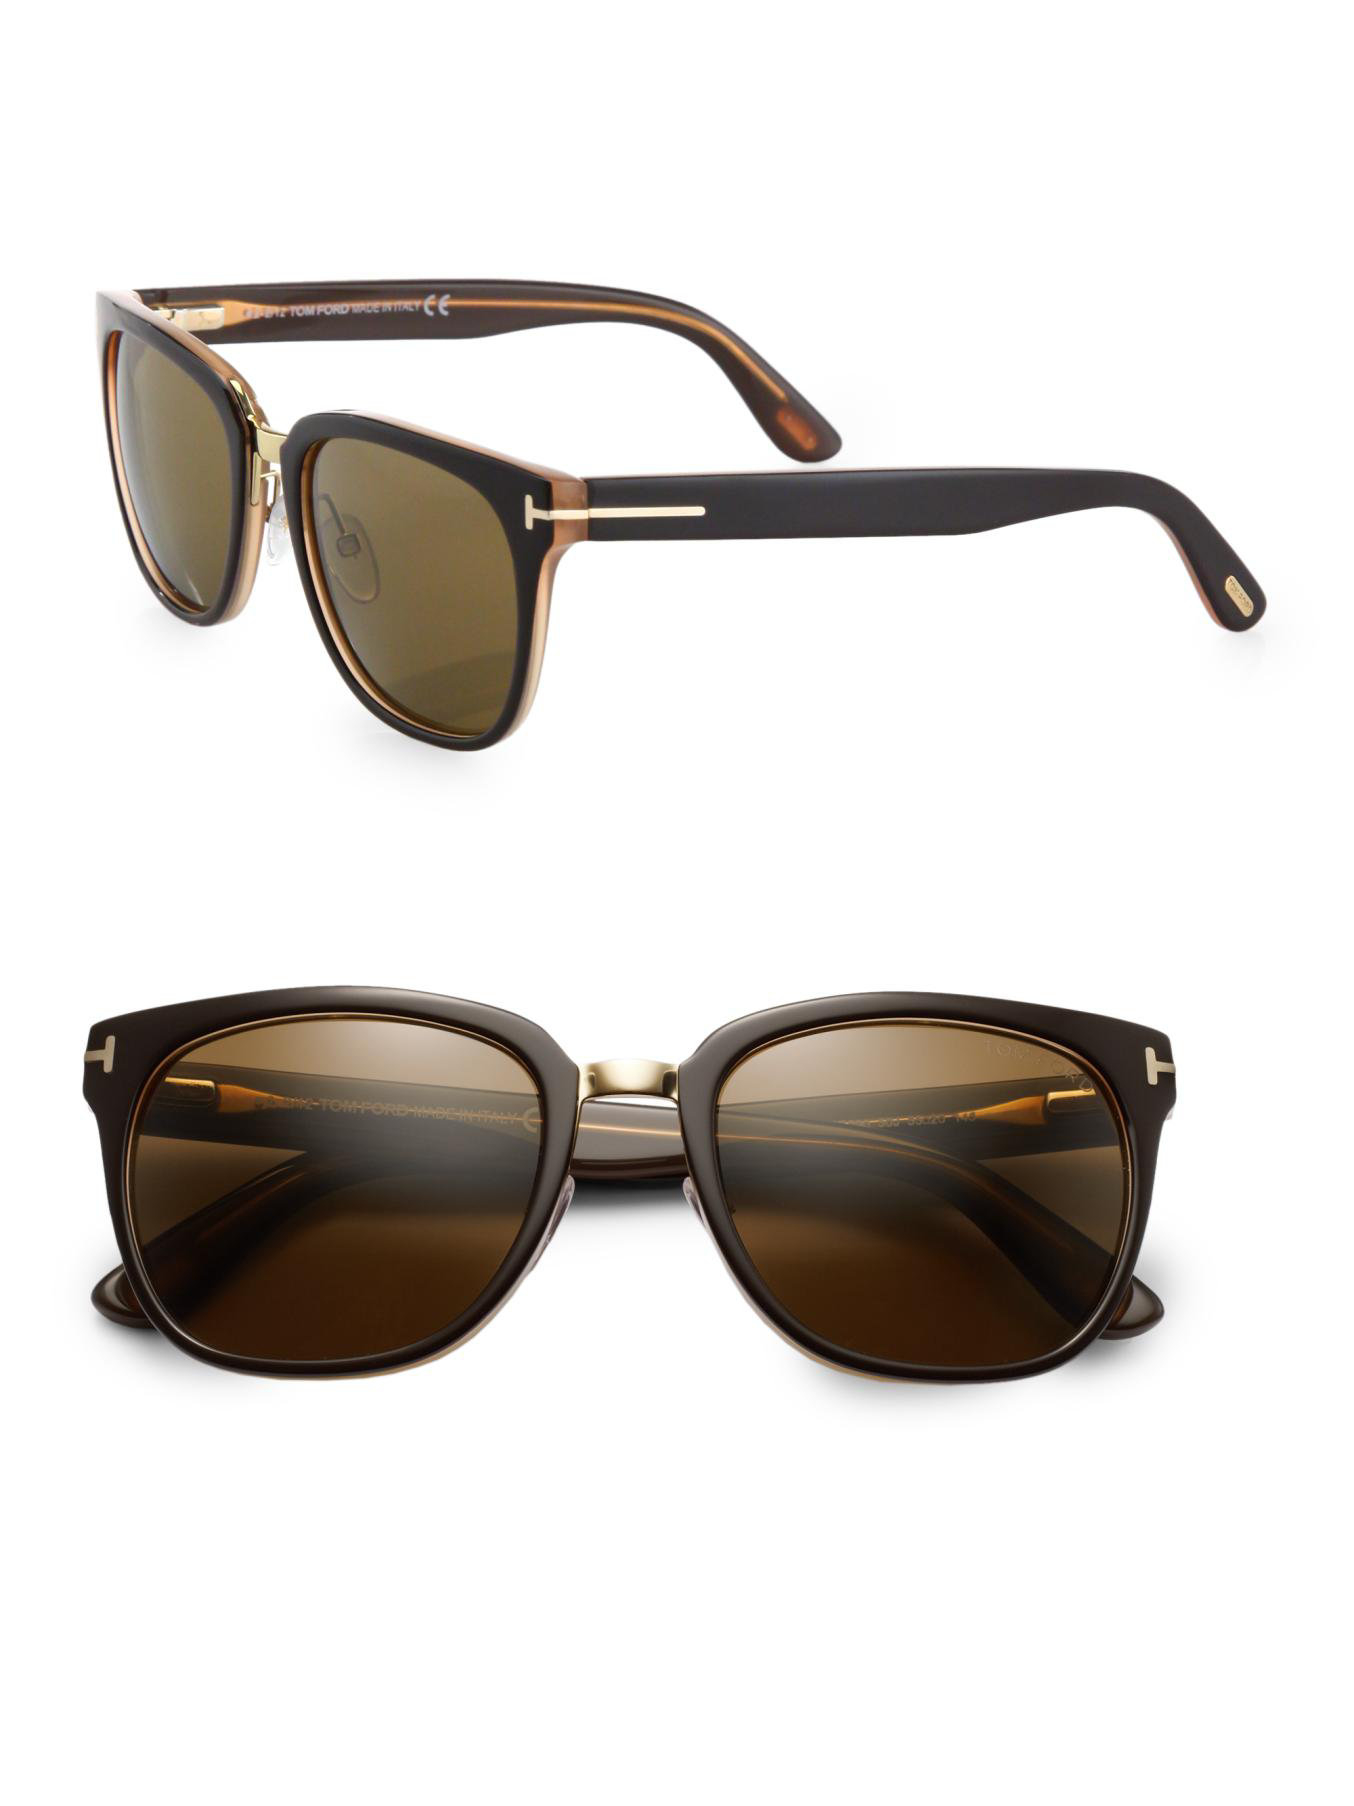 Tom ford Rock 55mm Square Sunglasses in Black | Lyst